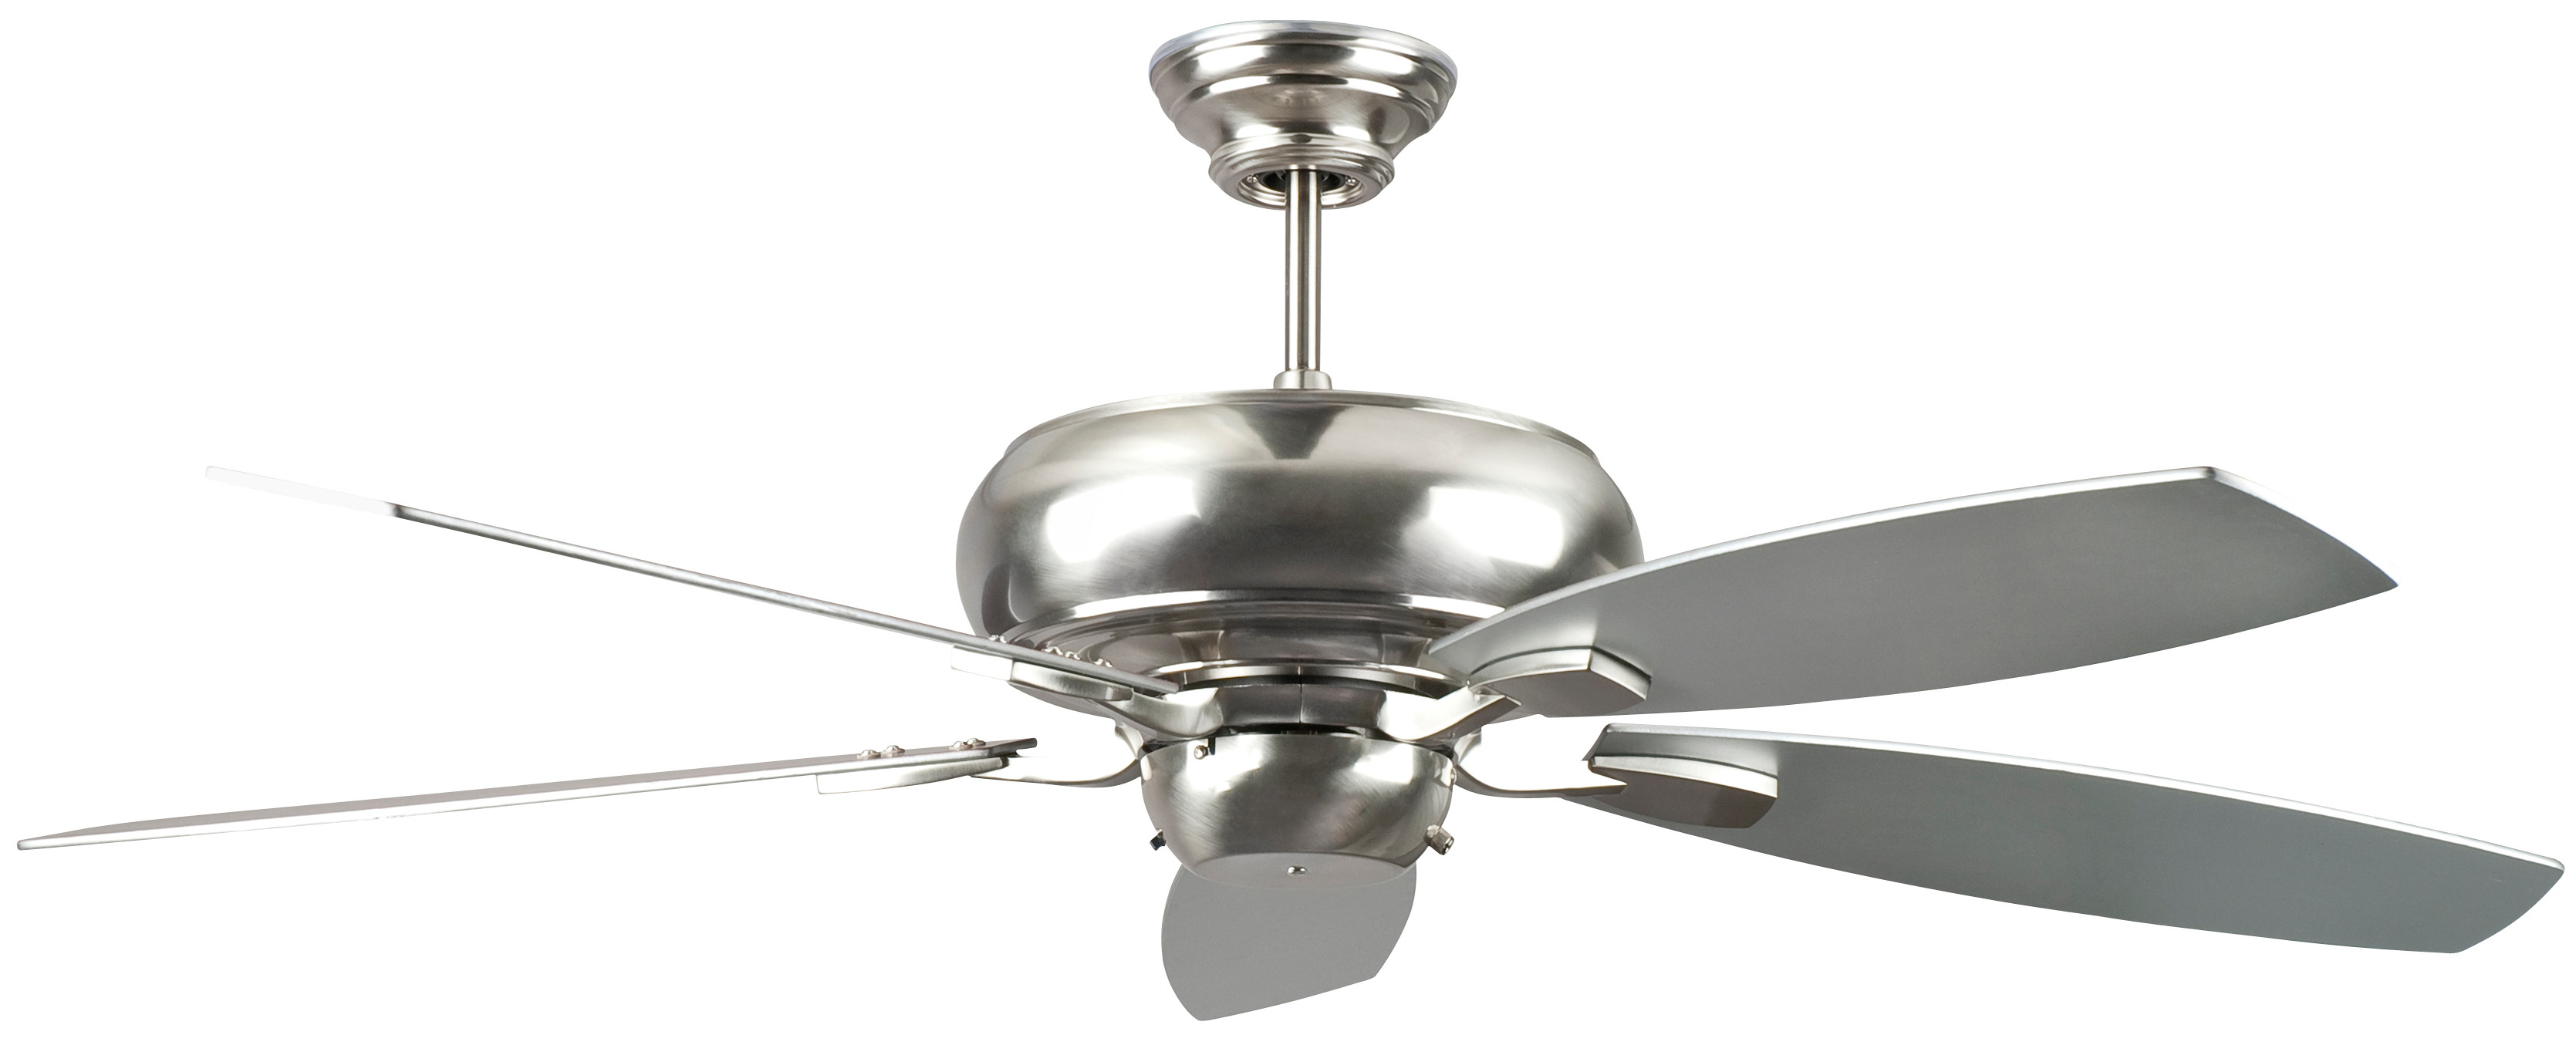 Auto Ceiling Fan : Air conditioning tips to save you money